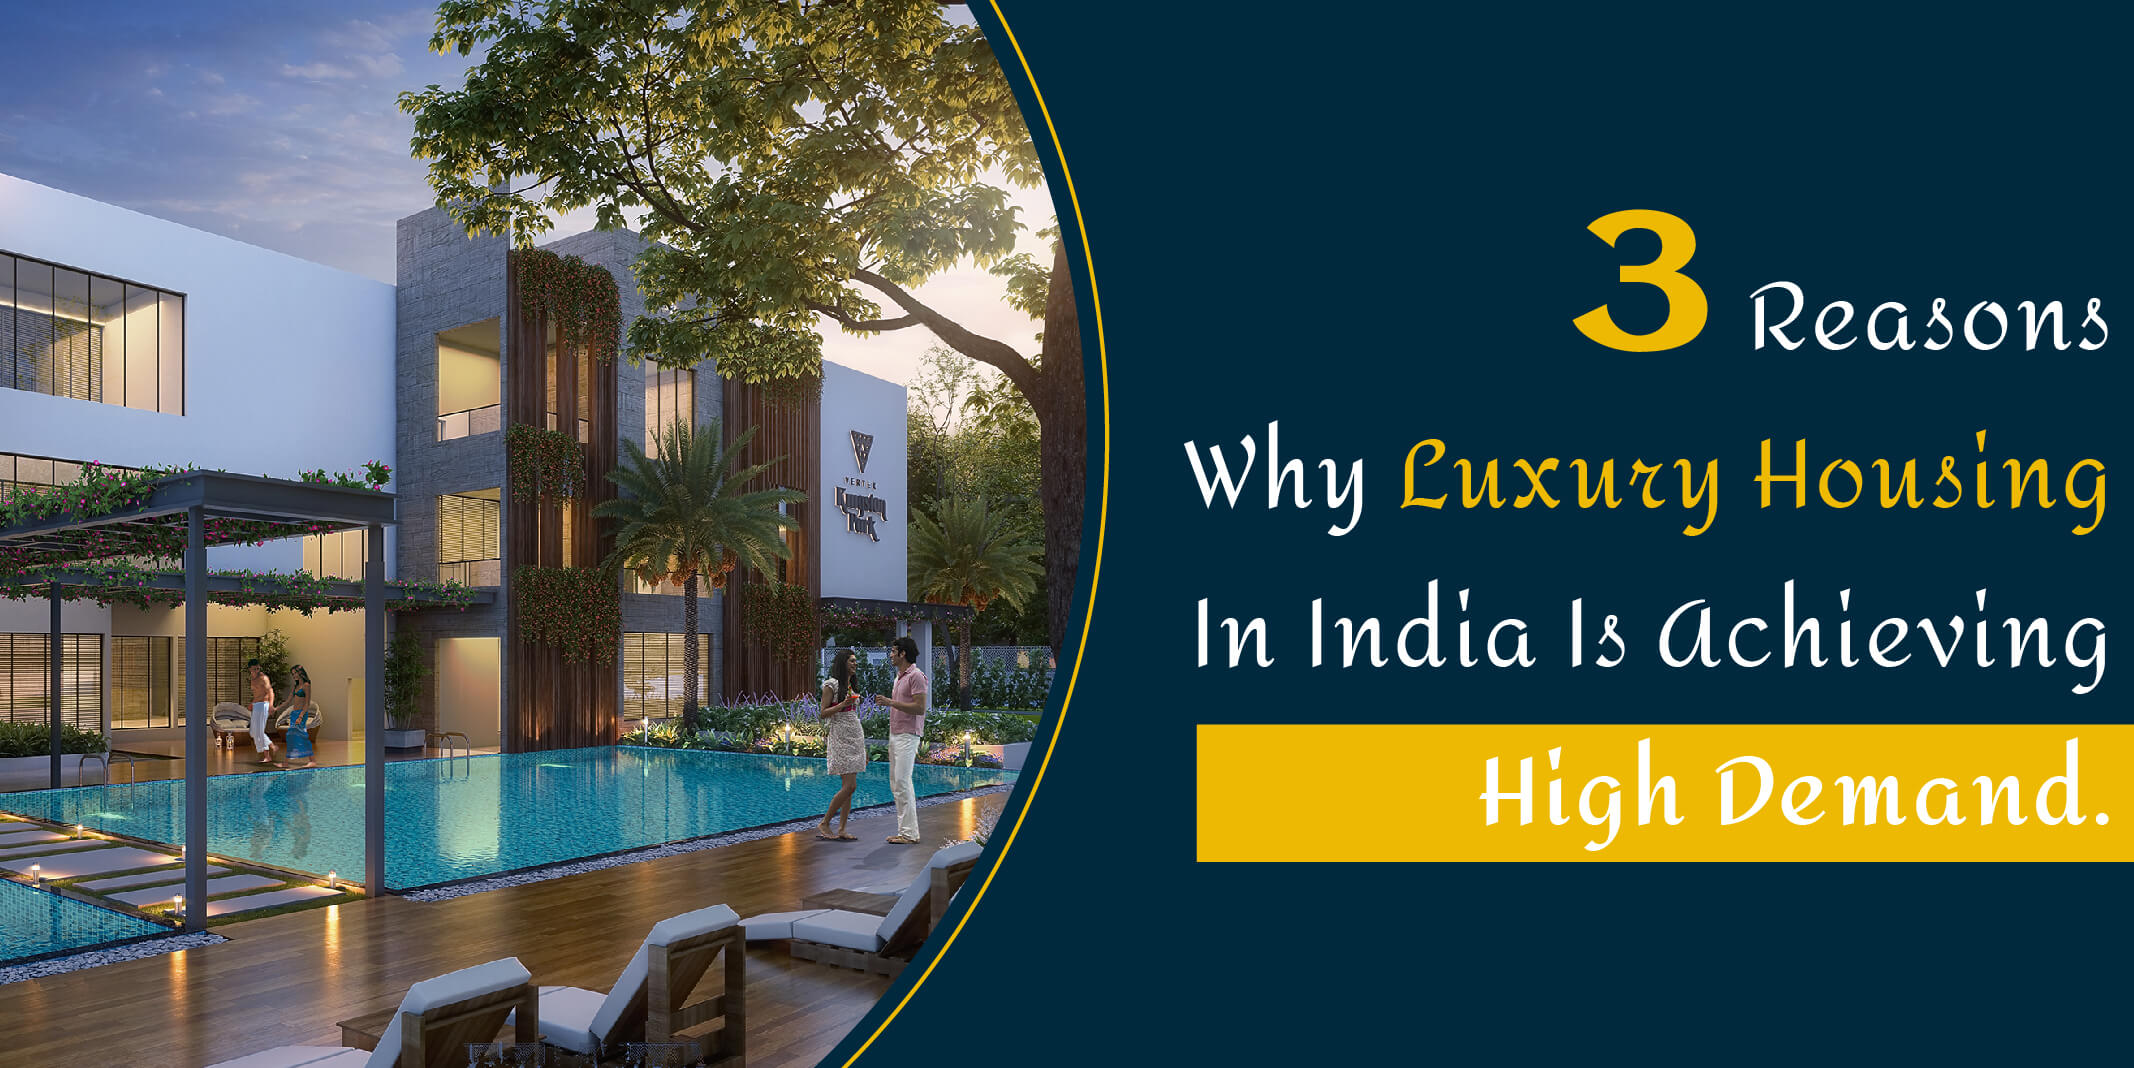 3 reasons why Luxury Housing in India is Achieving High Demand.